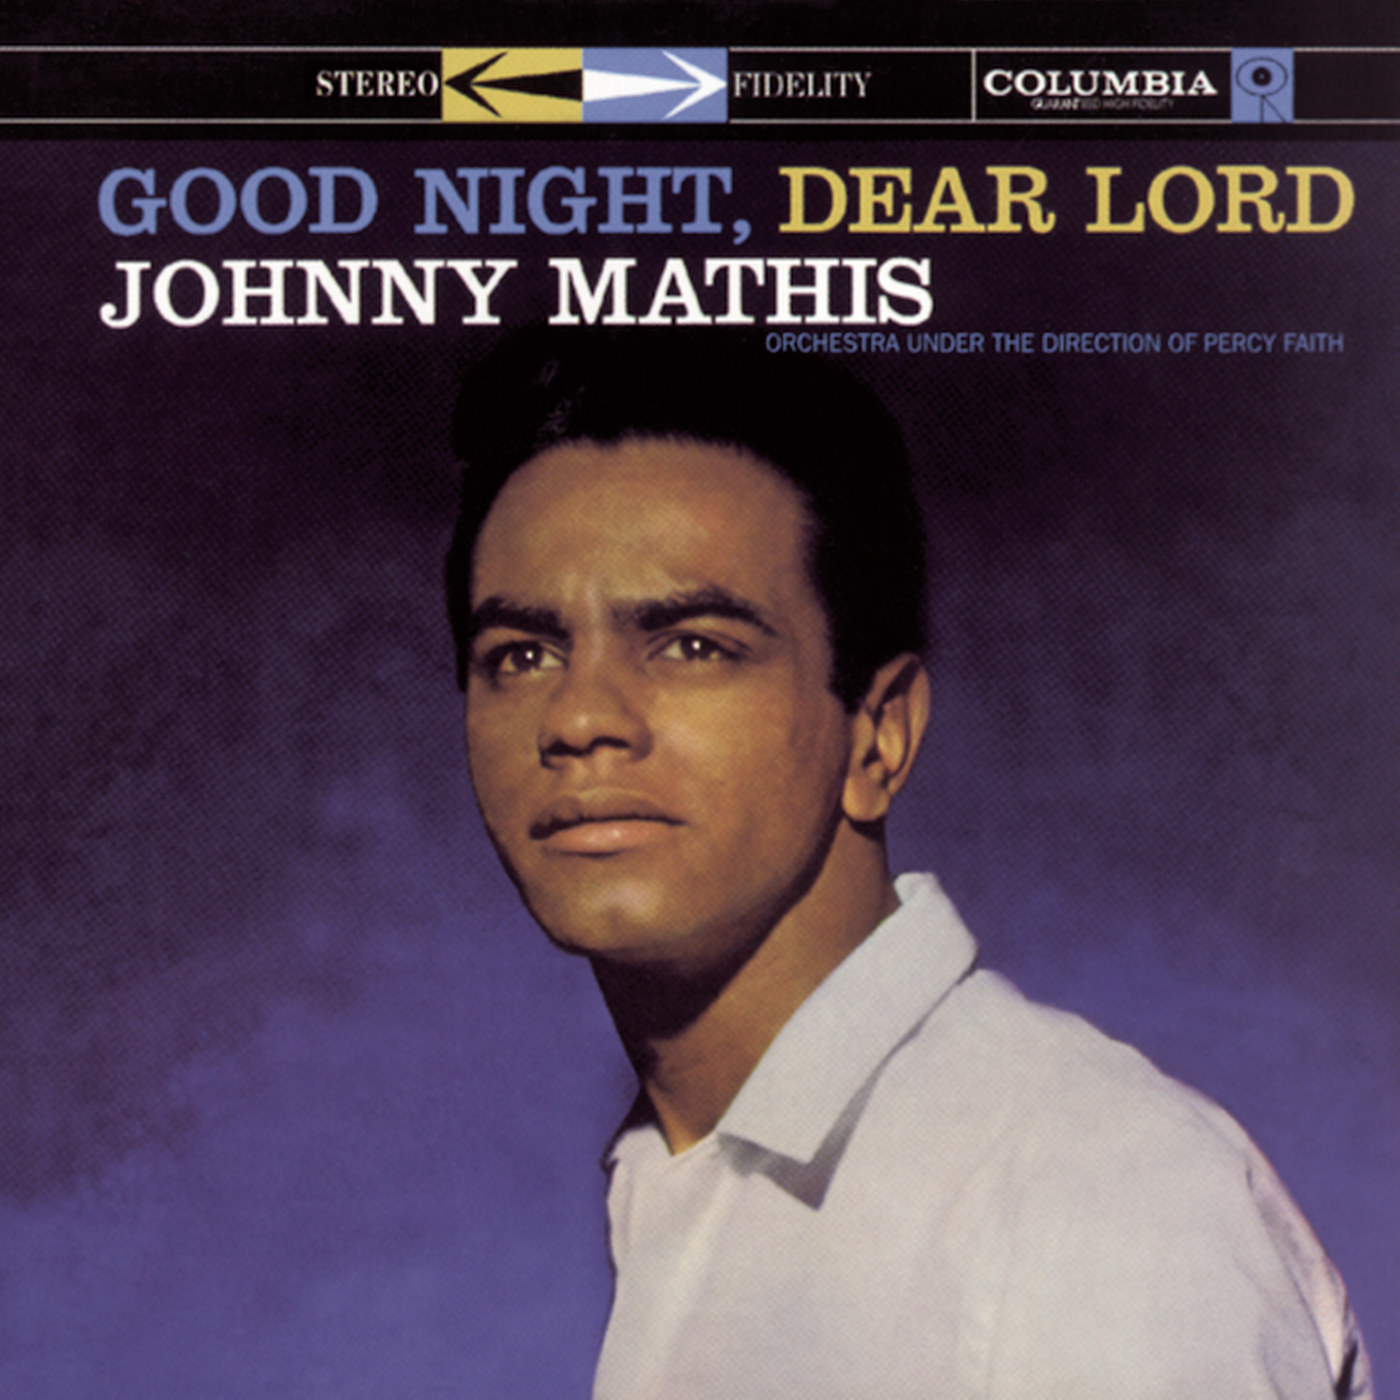 Good Night, Dear Lord - Johnny Mathis